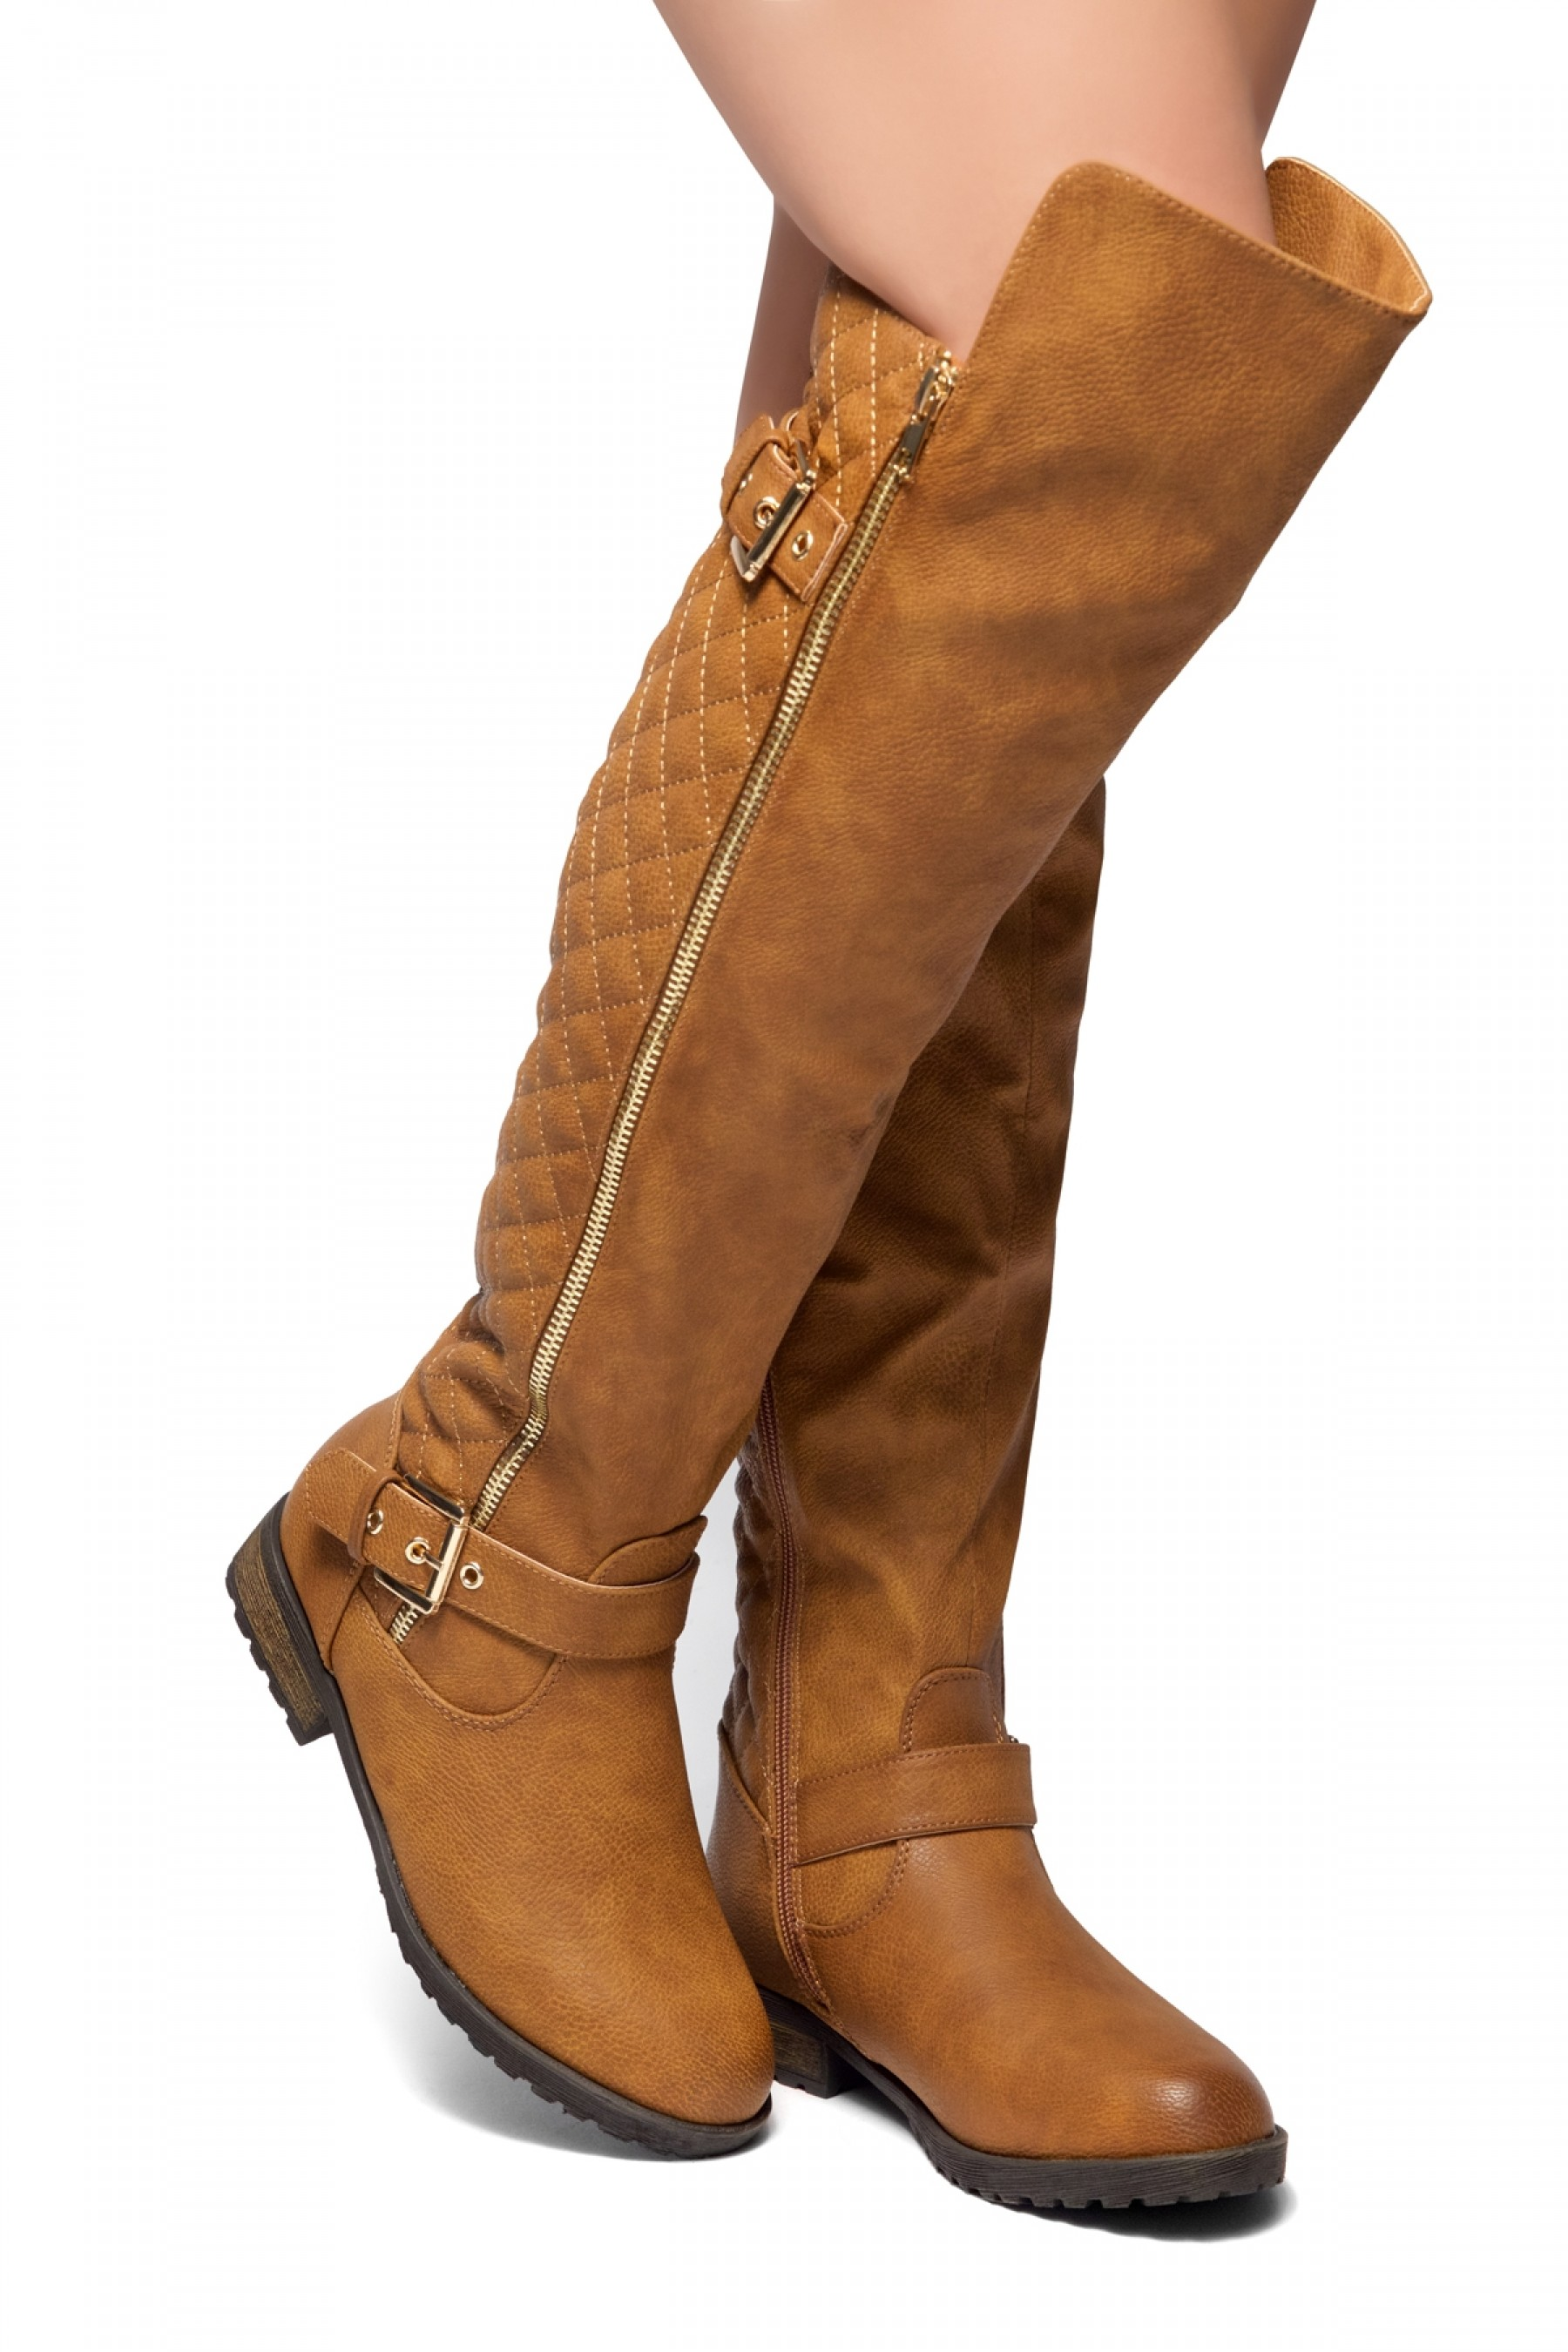 HerStyle Neekkaa-Quilted Zipper Buckle over Knee Riding Boots (Cognac)